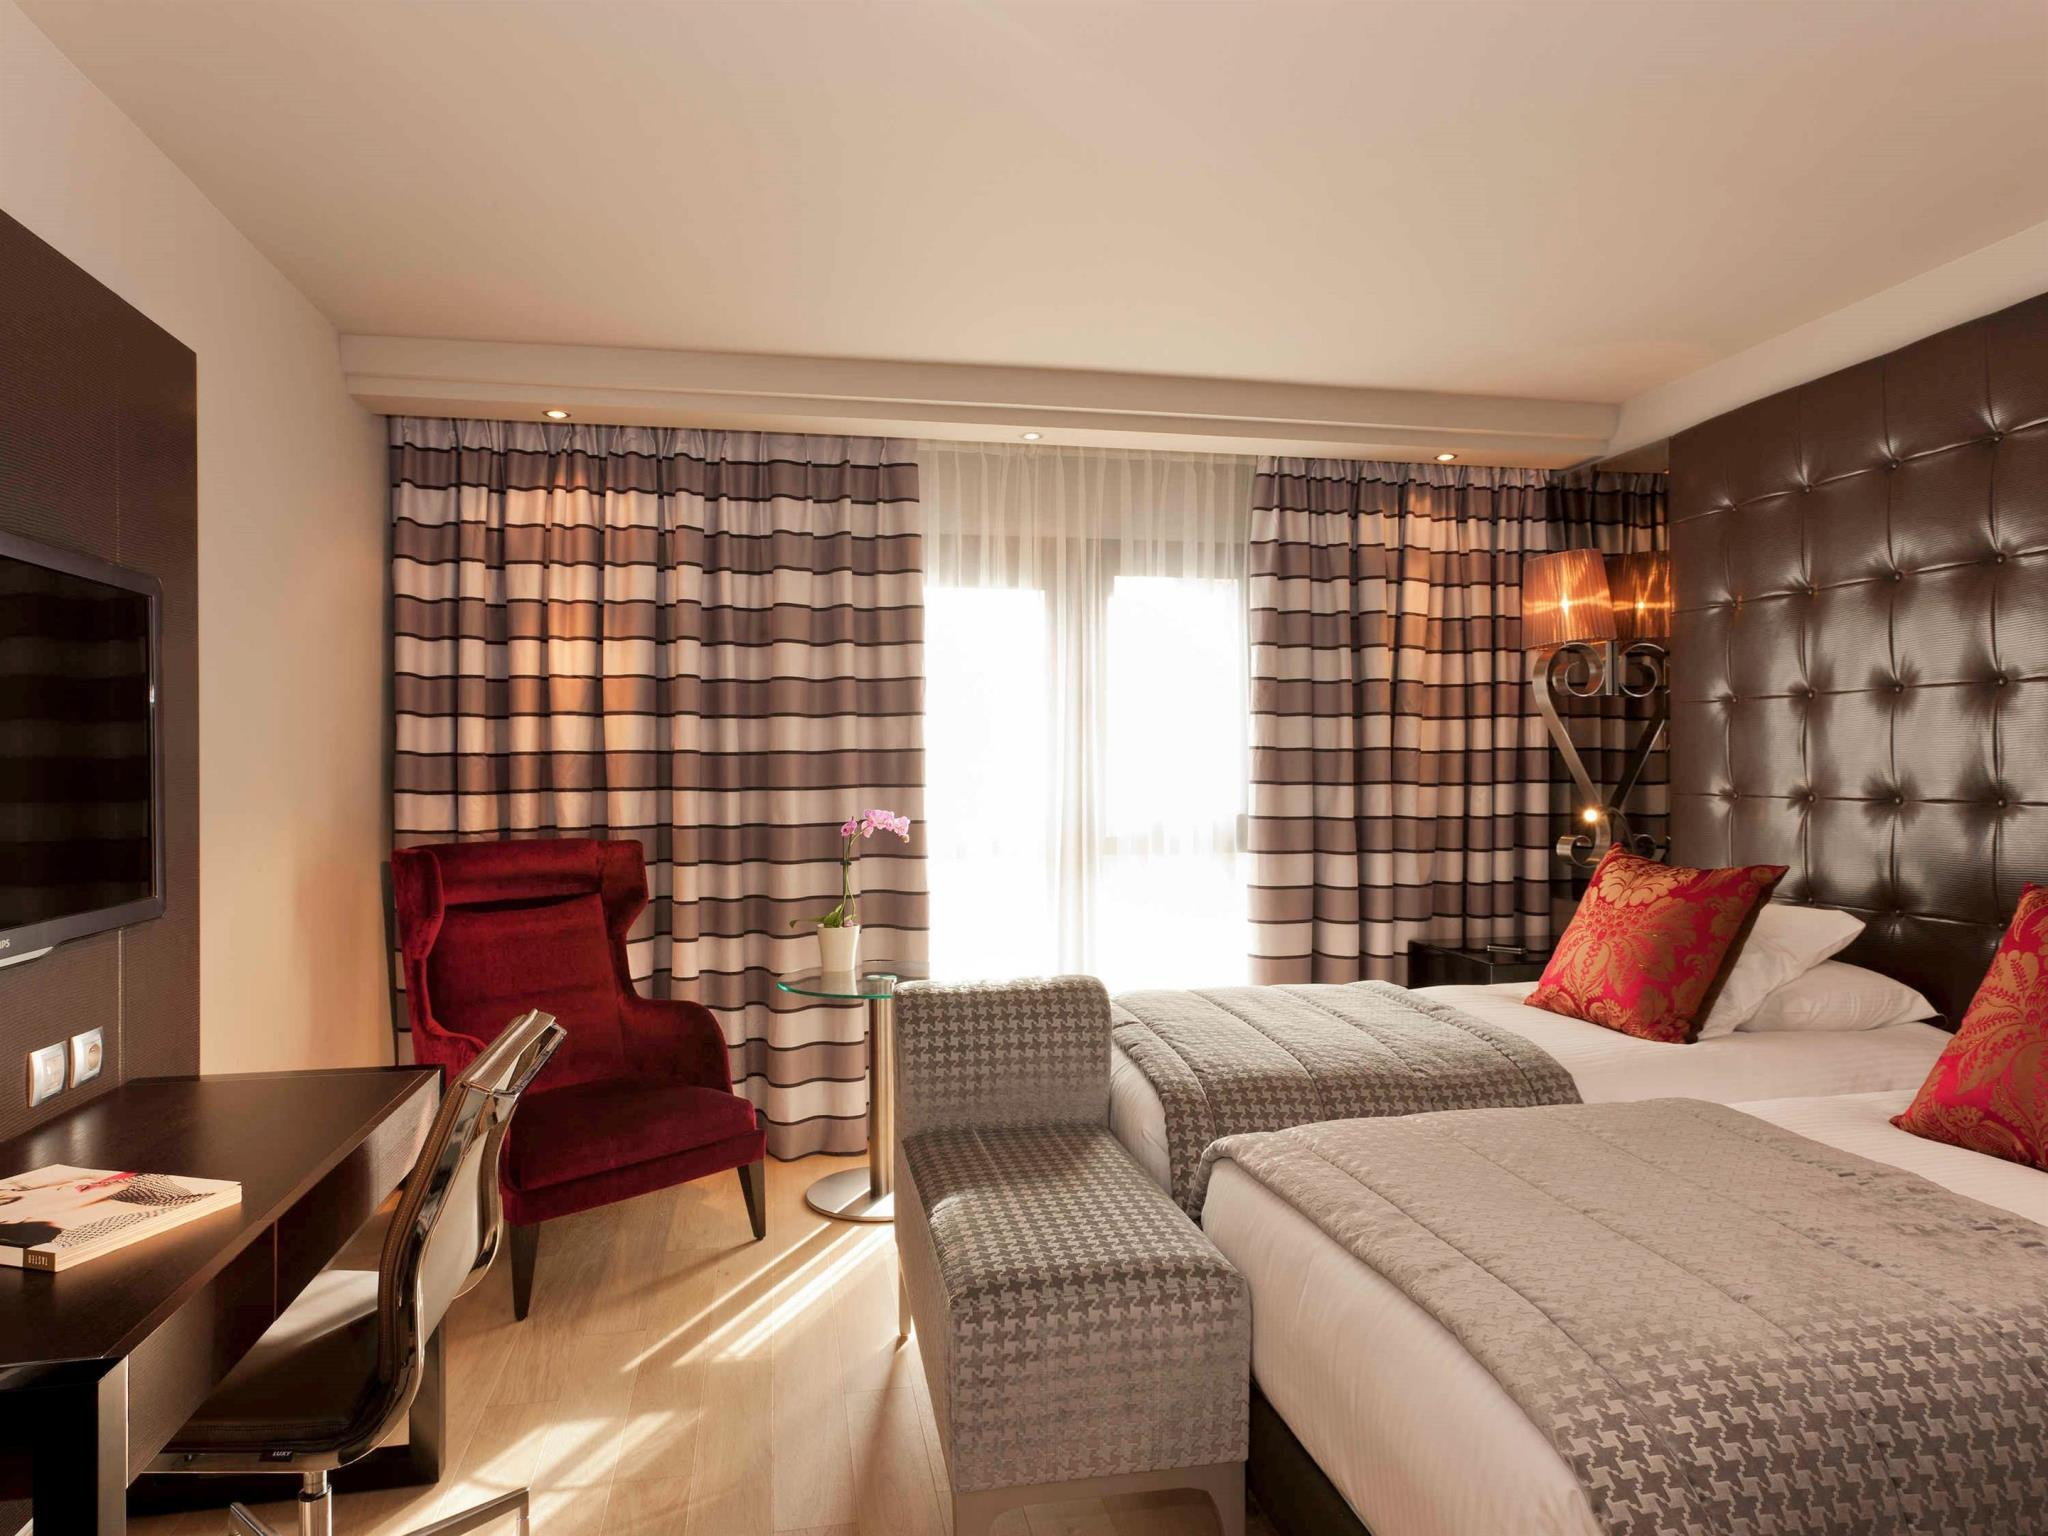 Hotel Burdigala Bordeaux - MGallery Collection, Gironde